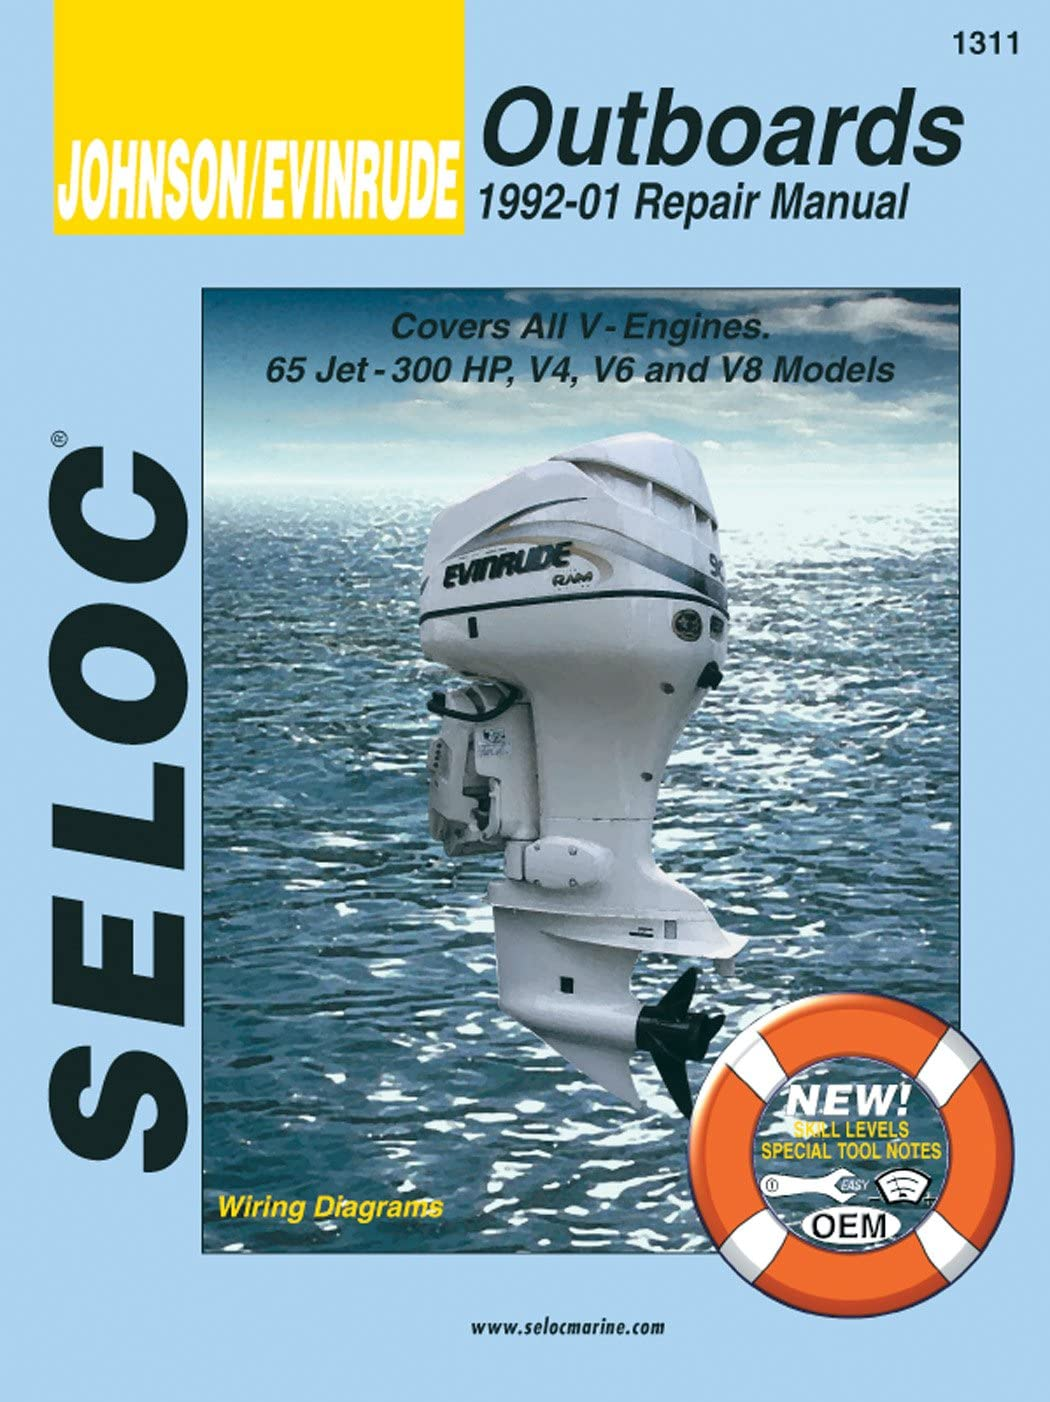 Sierra International Seloc Manual 18-01311 Johnson/Evinrude Outboards Repair 1992-2001 65 Jet-300 HP V4 V6 & V8 Model